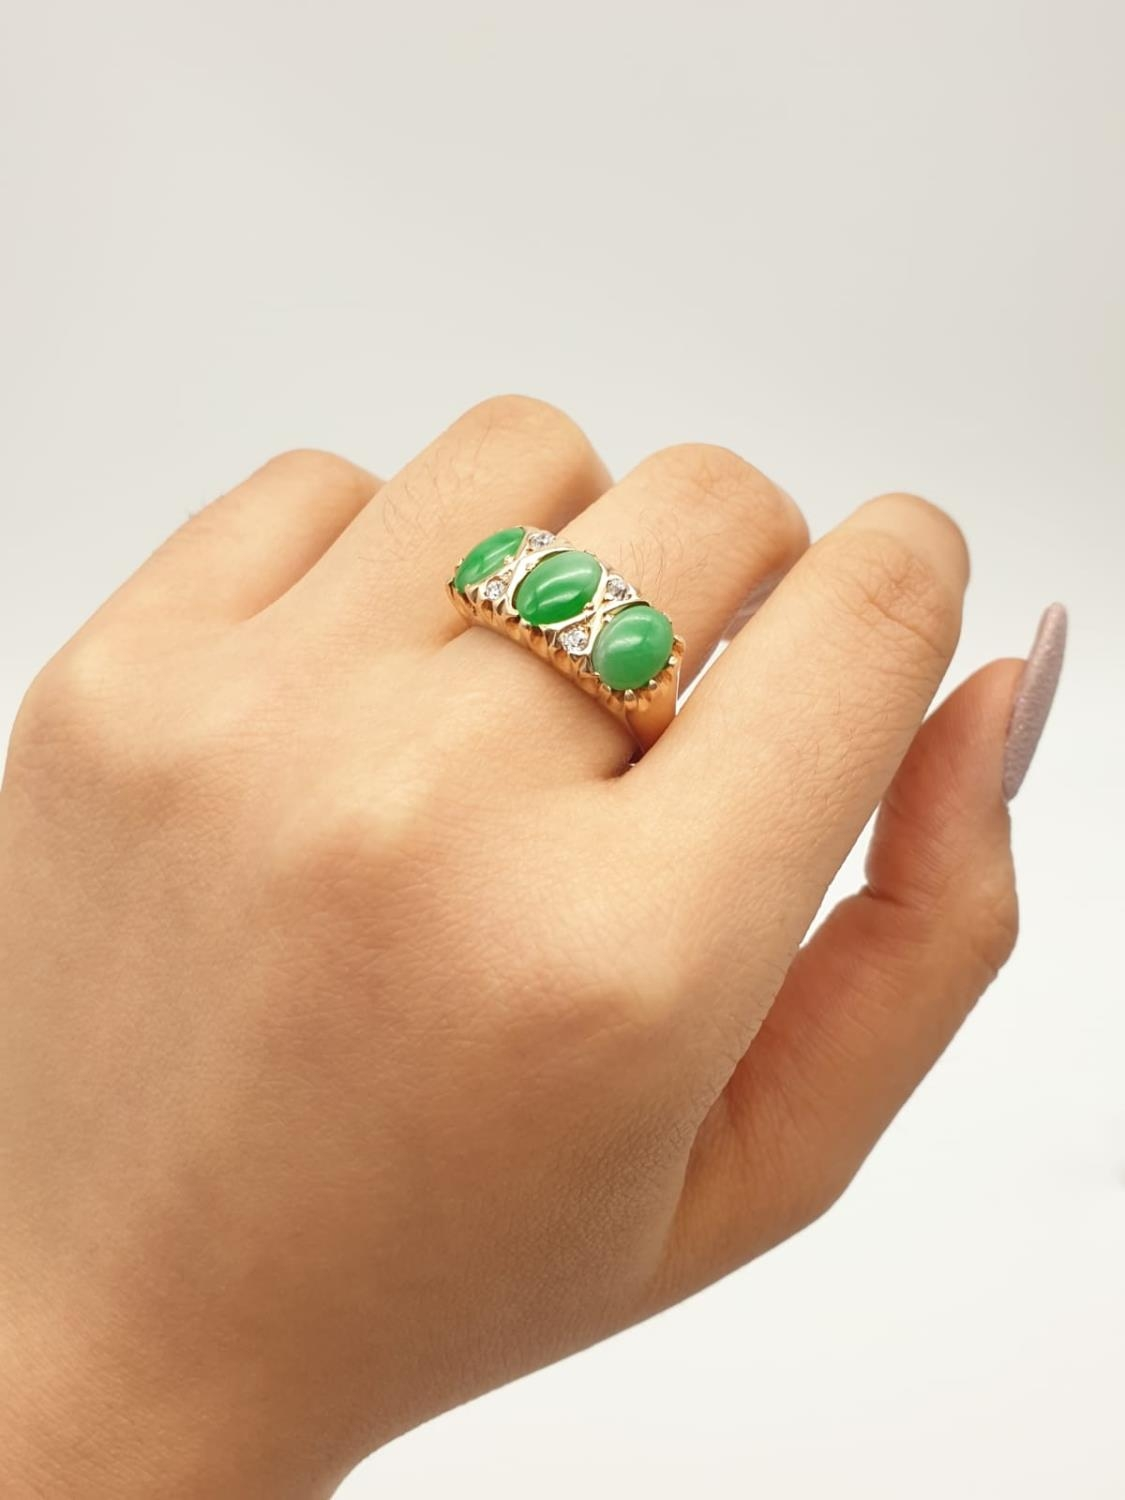 14k yellow gold antique ring with trilogy green jadeite and decorated with diamonds, weight 8.6g and - Image 6 of 6